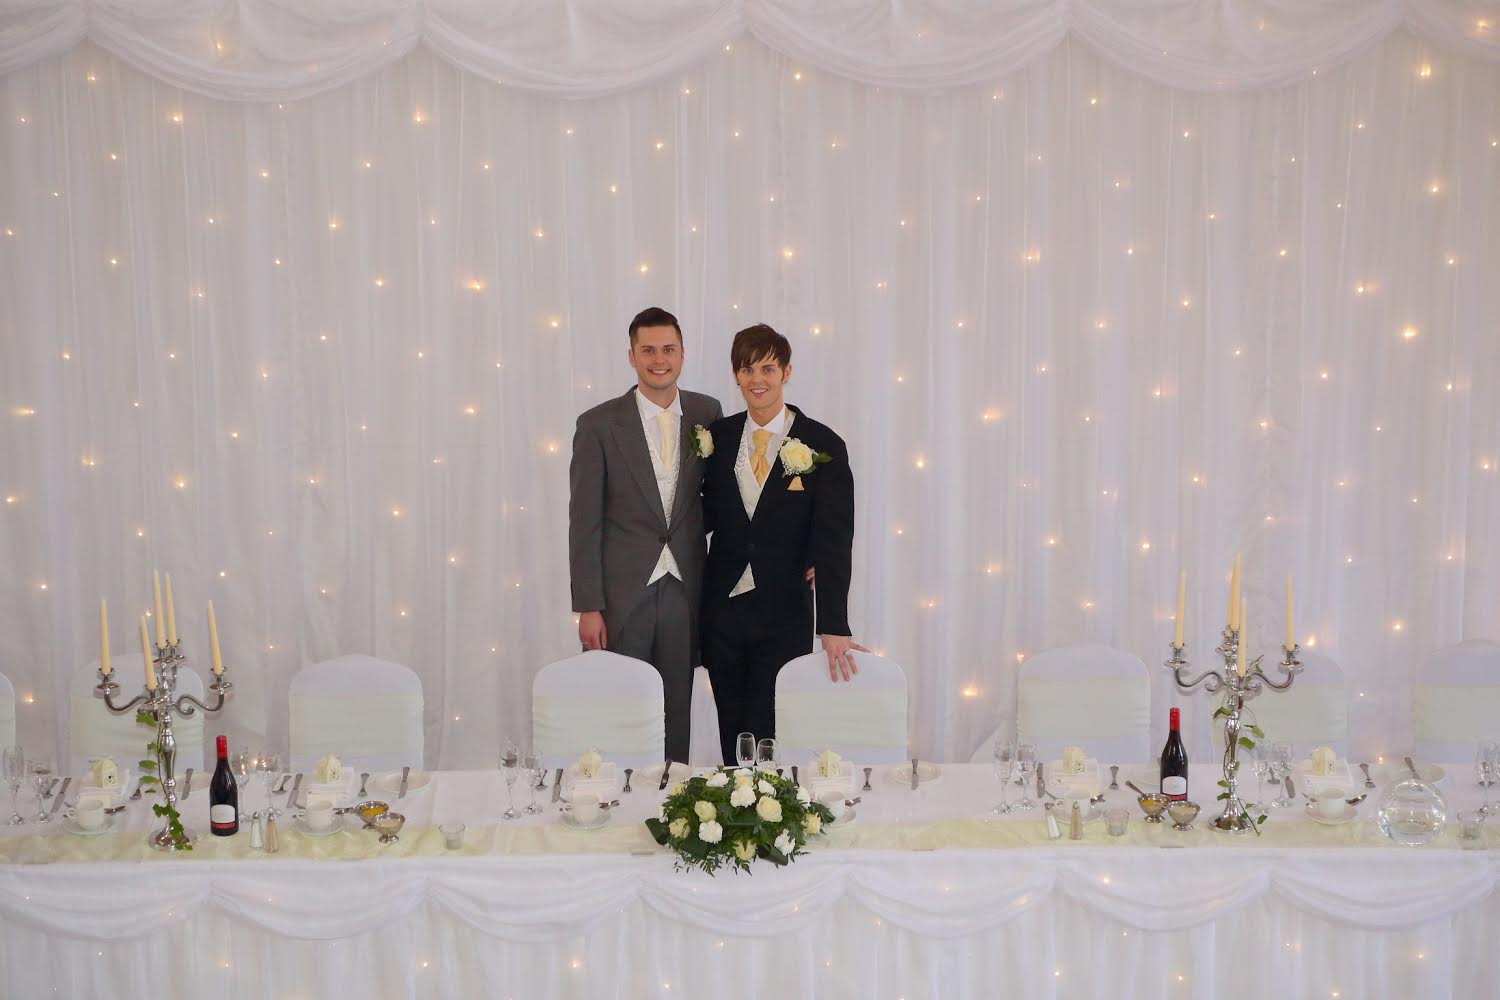 Real wedding – Ryan and Callum at The Grand Hotel